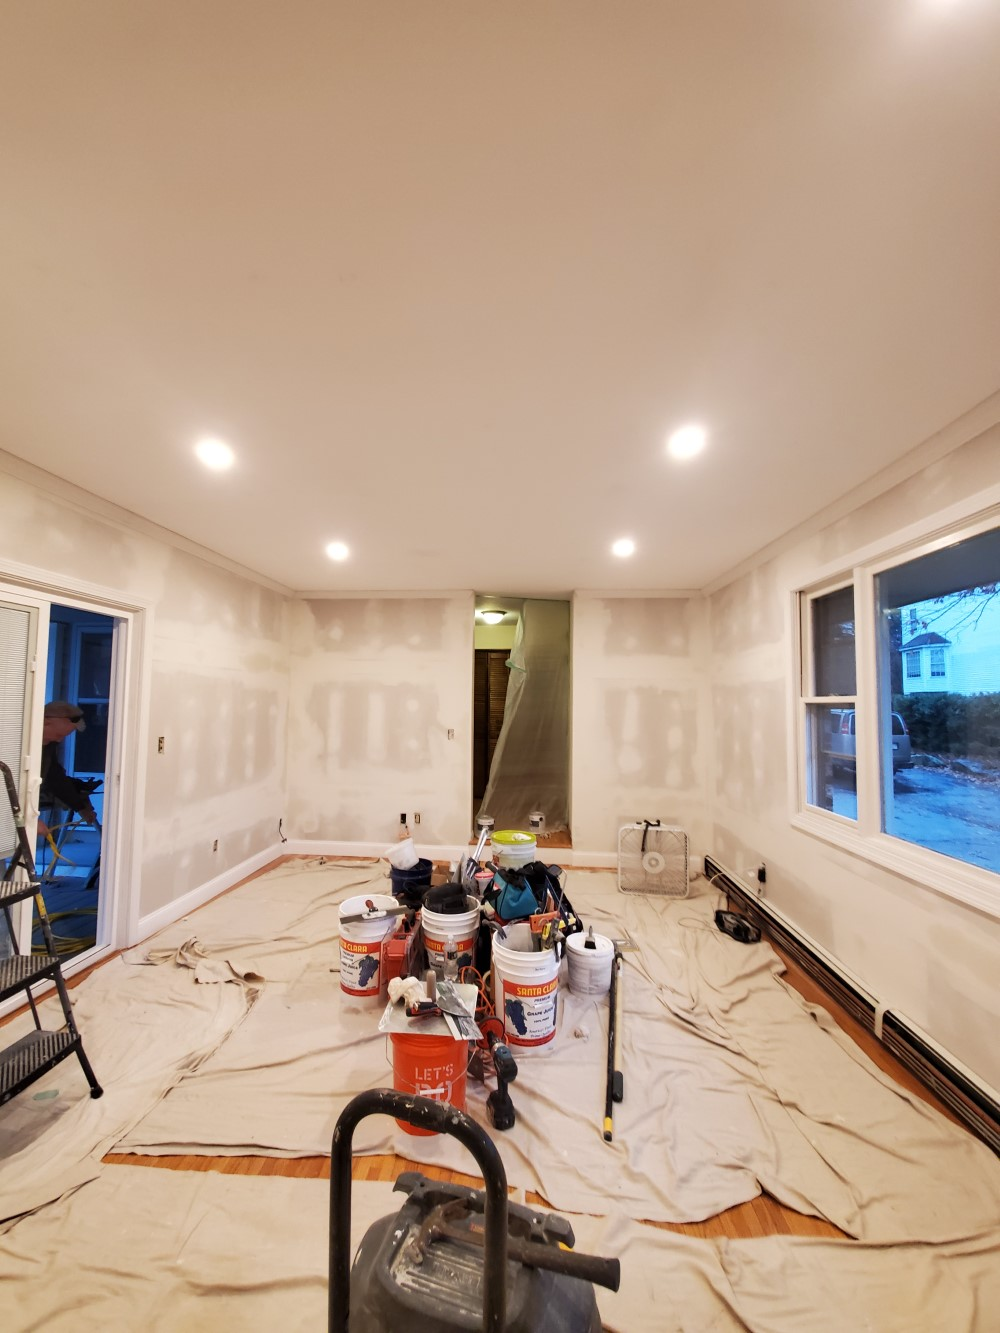 Drywall, Carpentry, and Painting in Hudson, MA 01749